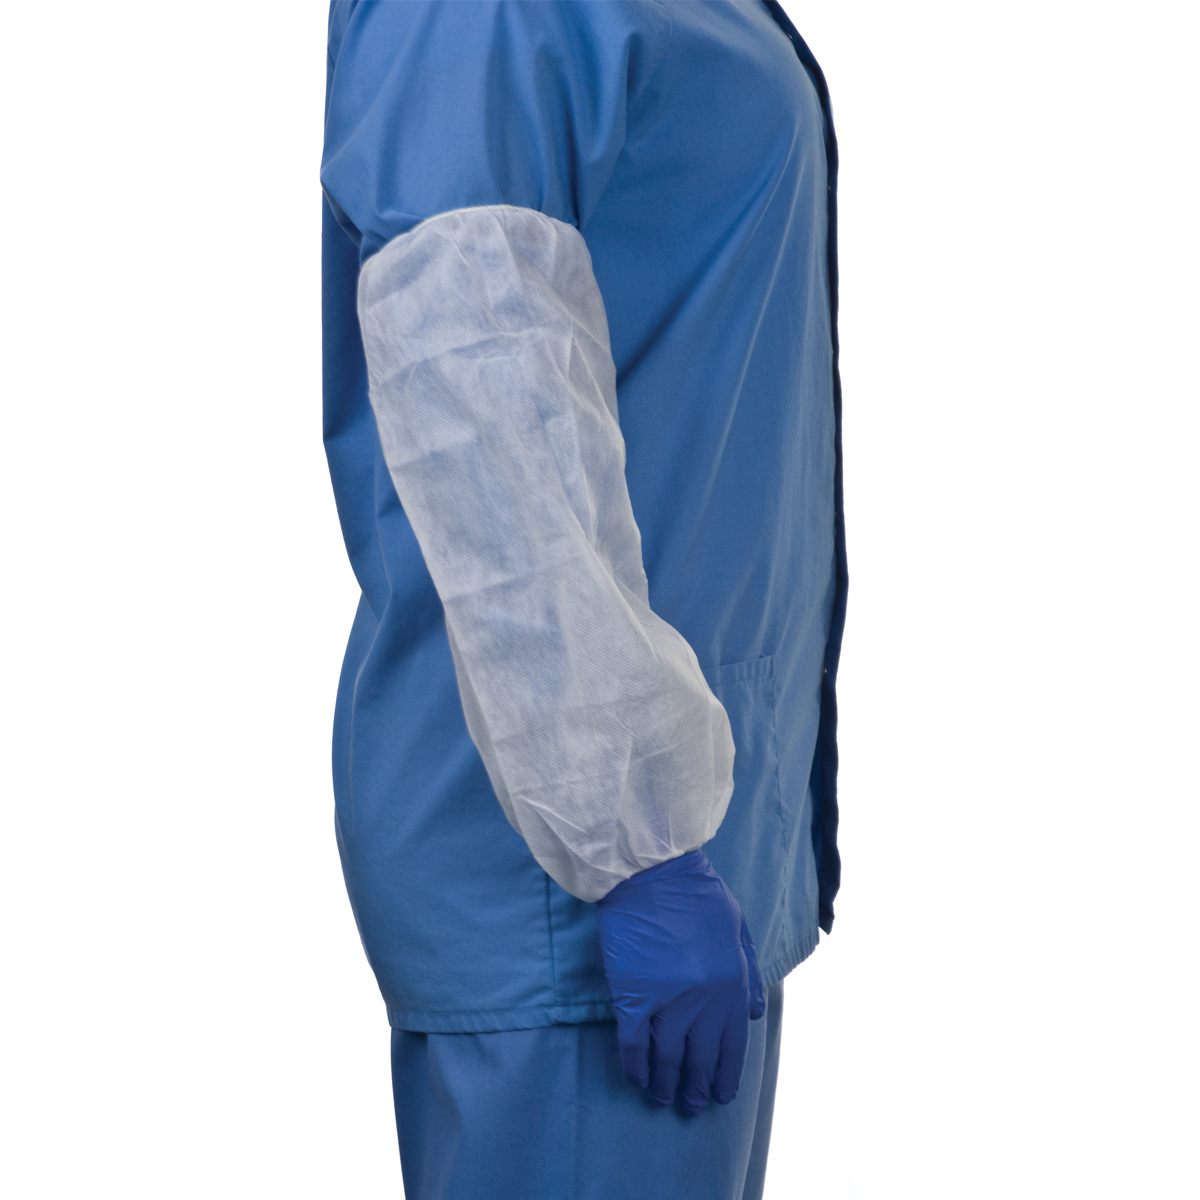 Protective Sleeves Image